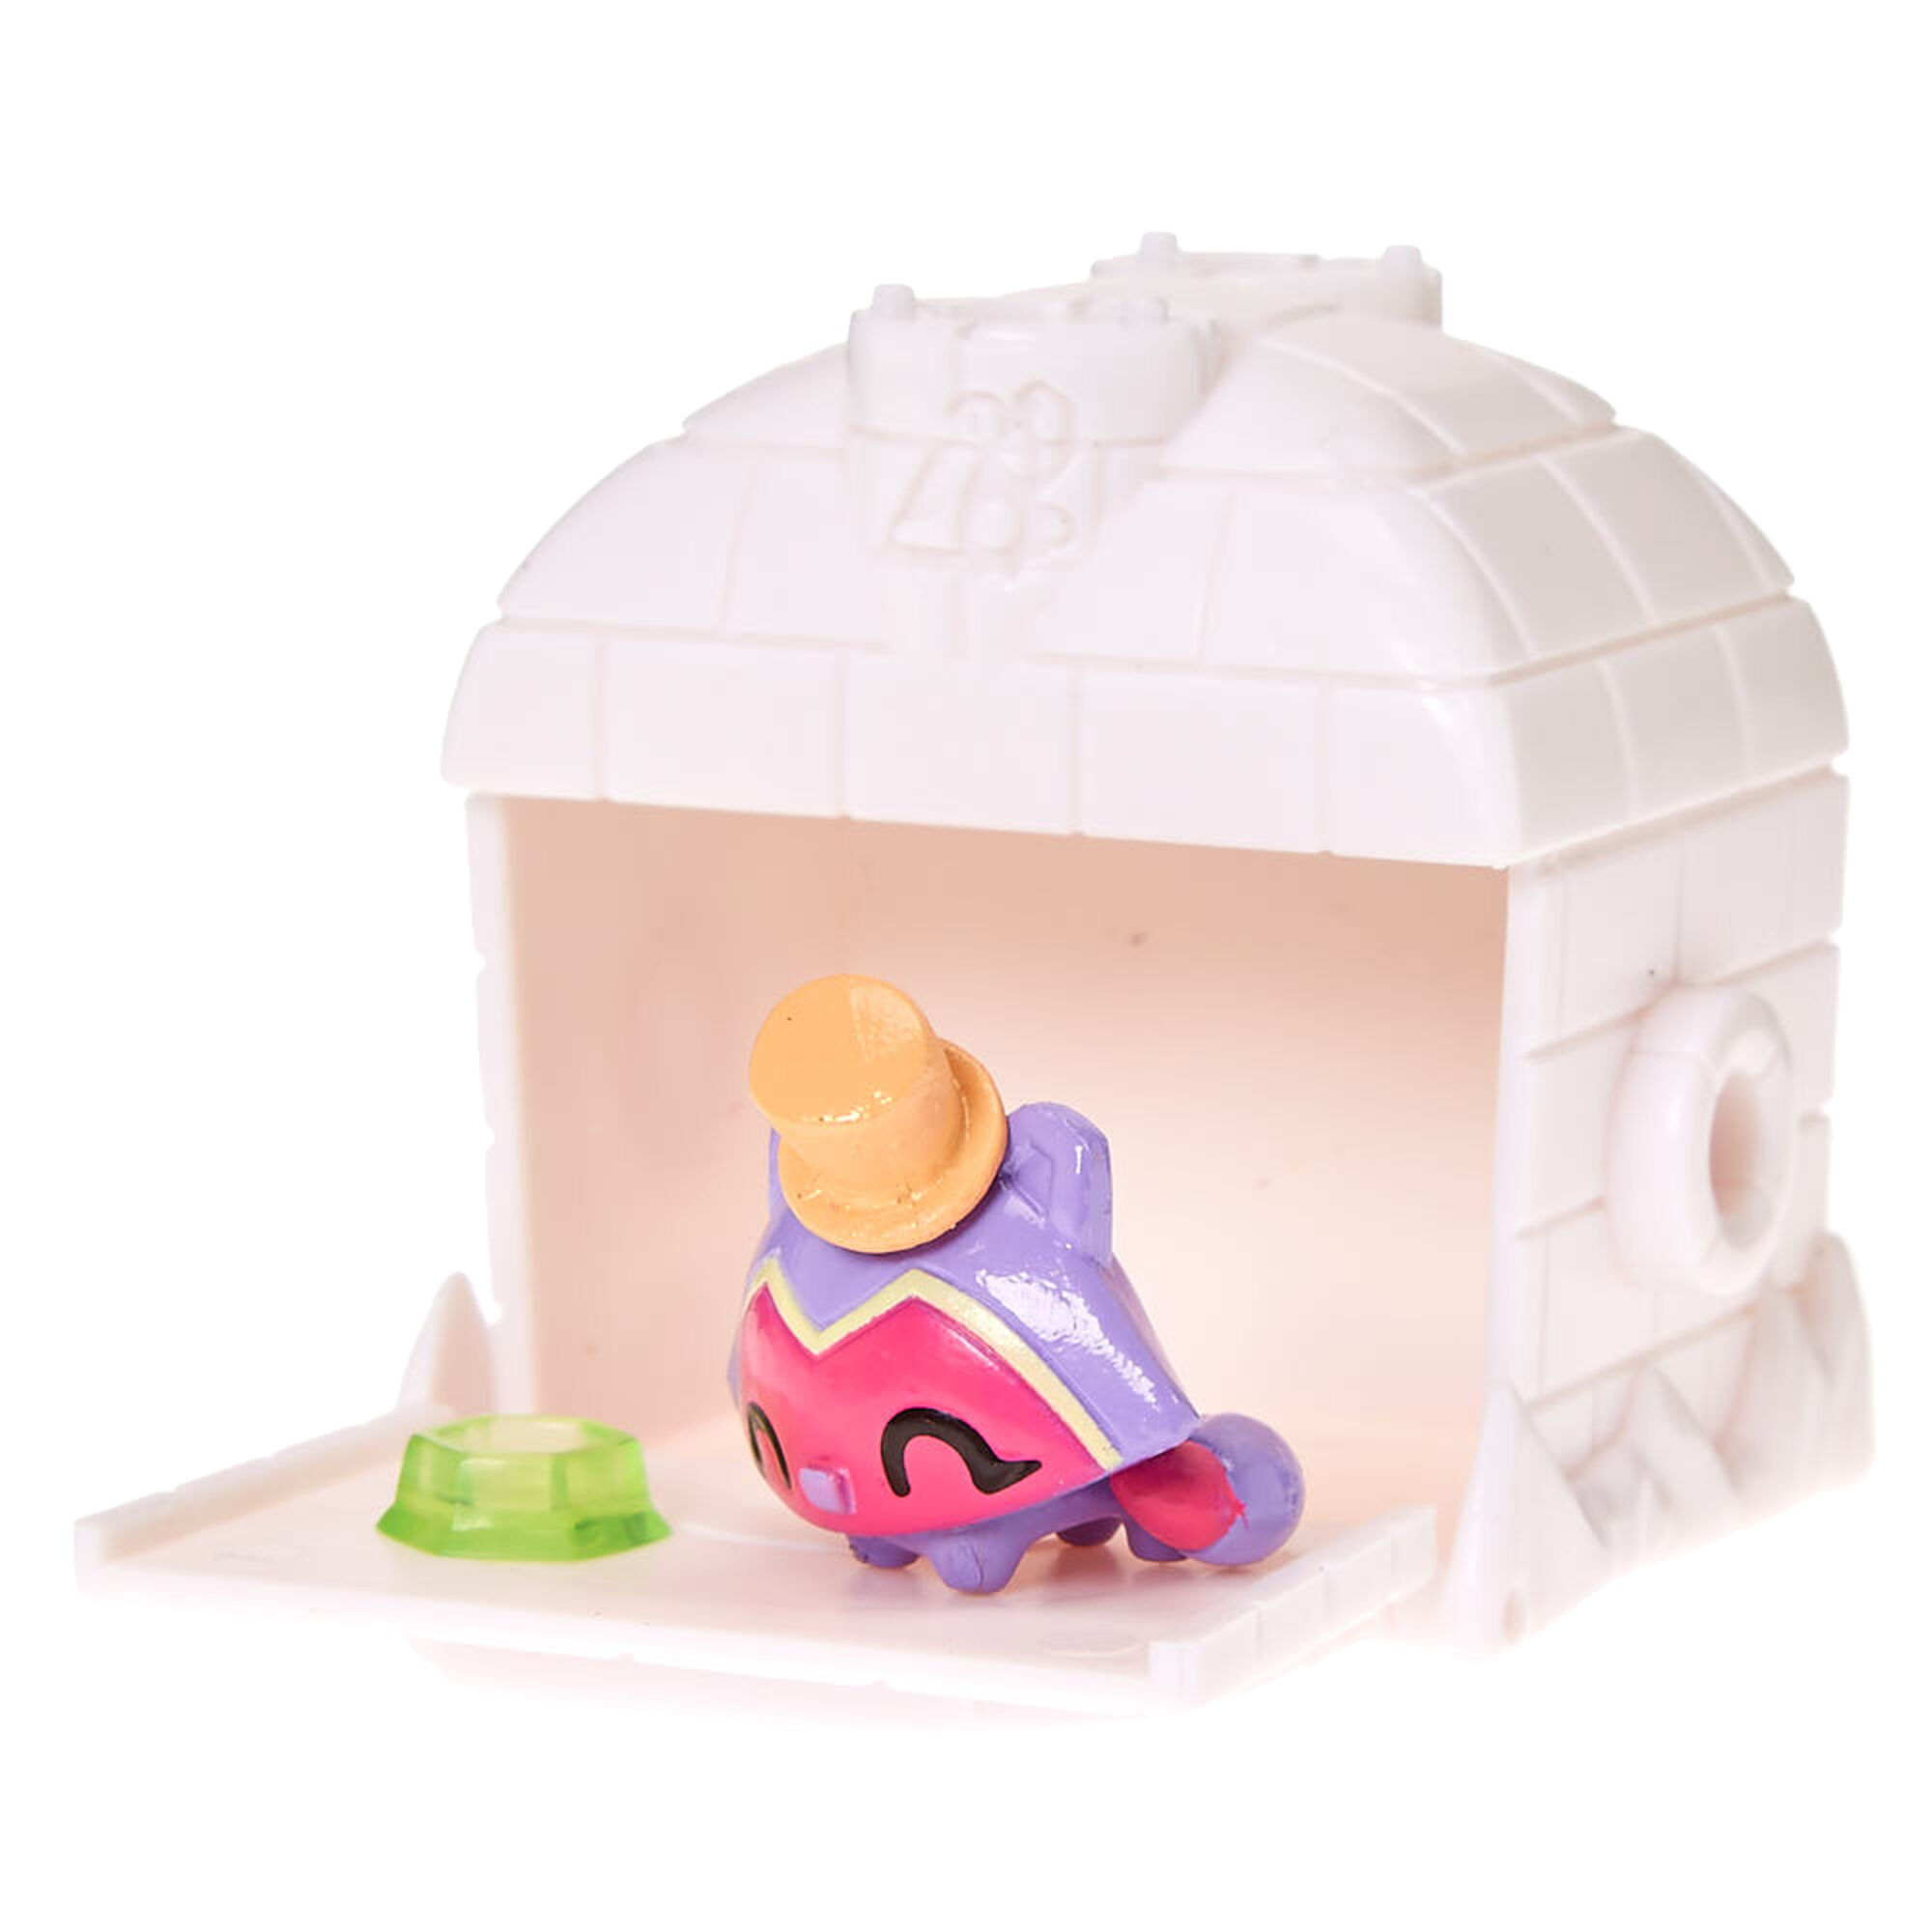 Animal Jam Adopt a Pet Series 2 Blind Pack | Claire's US